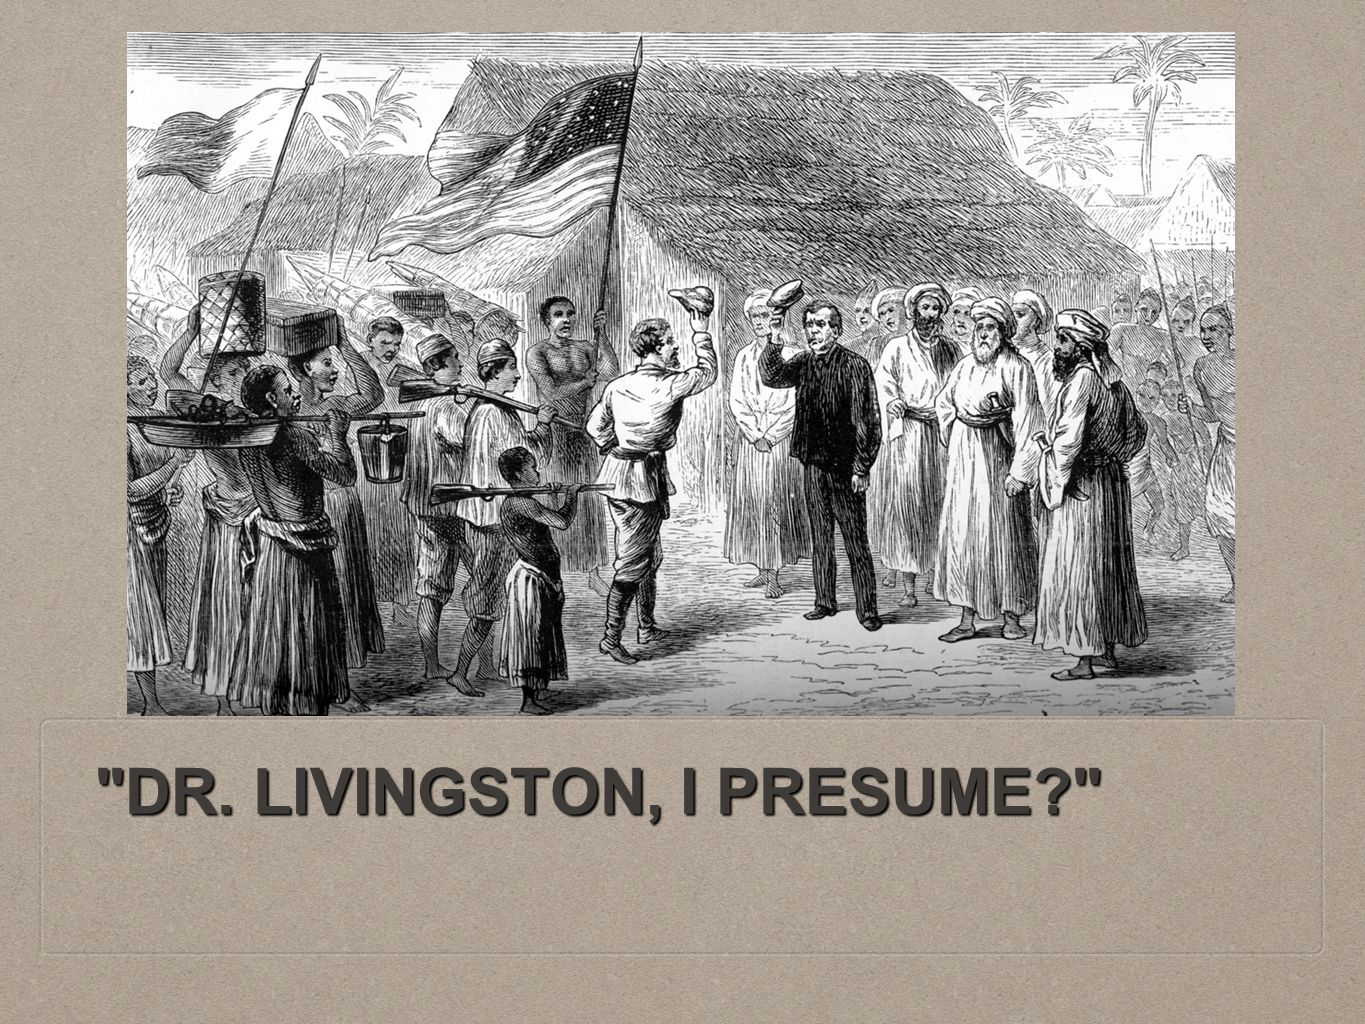 DR. LIVINGSTON, I PRESUME